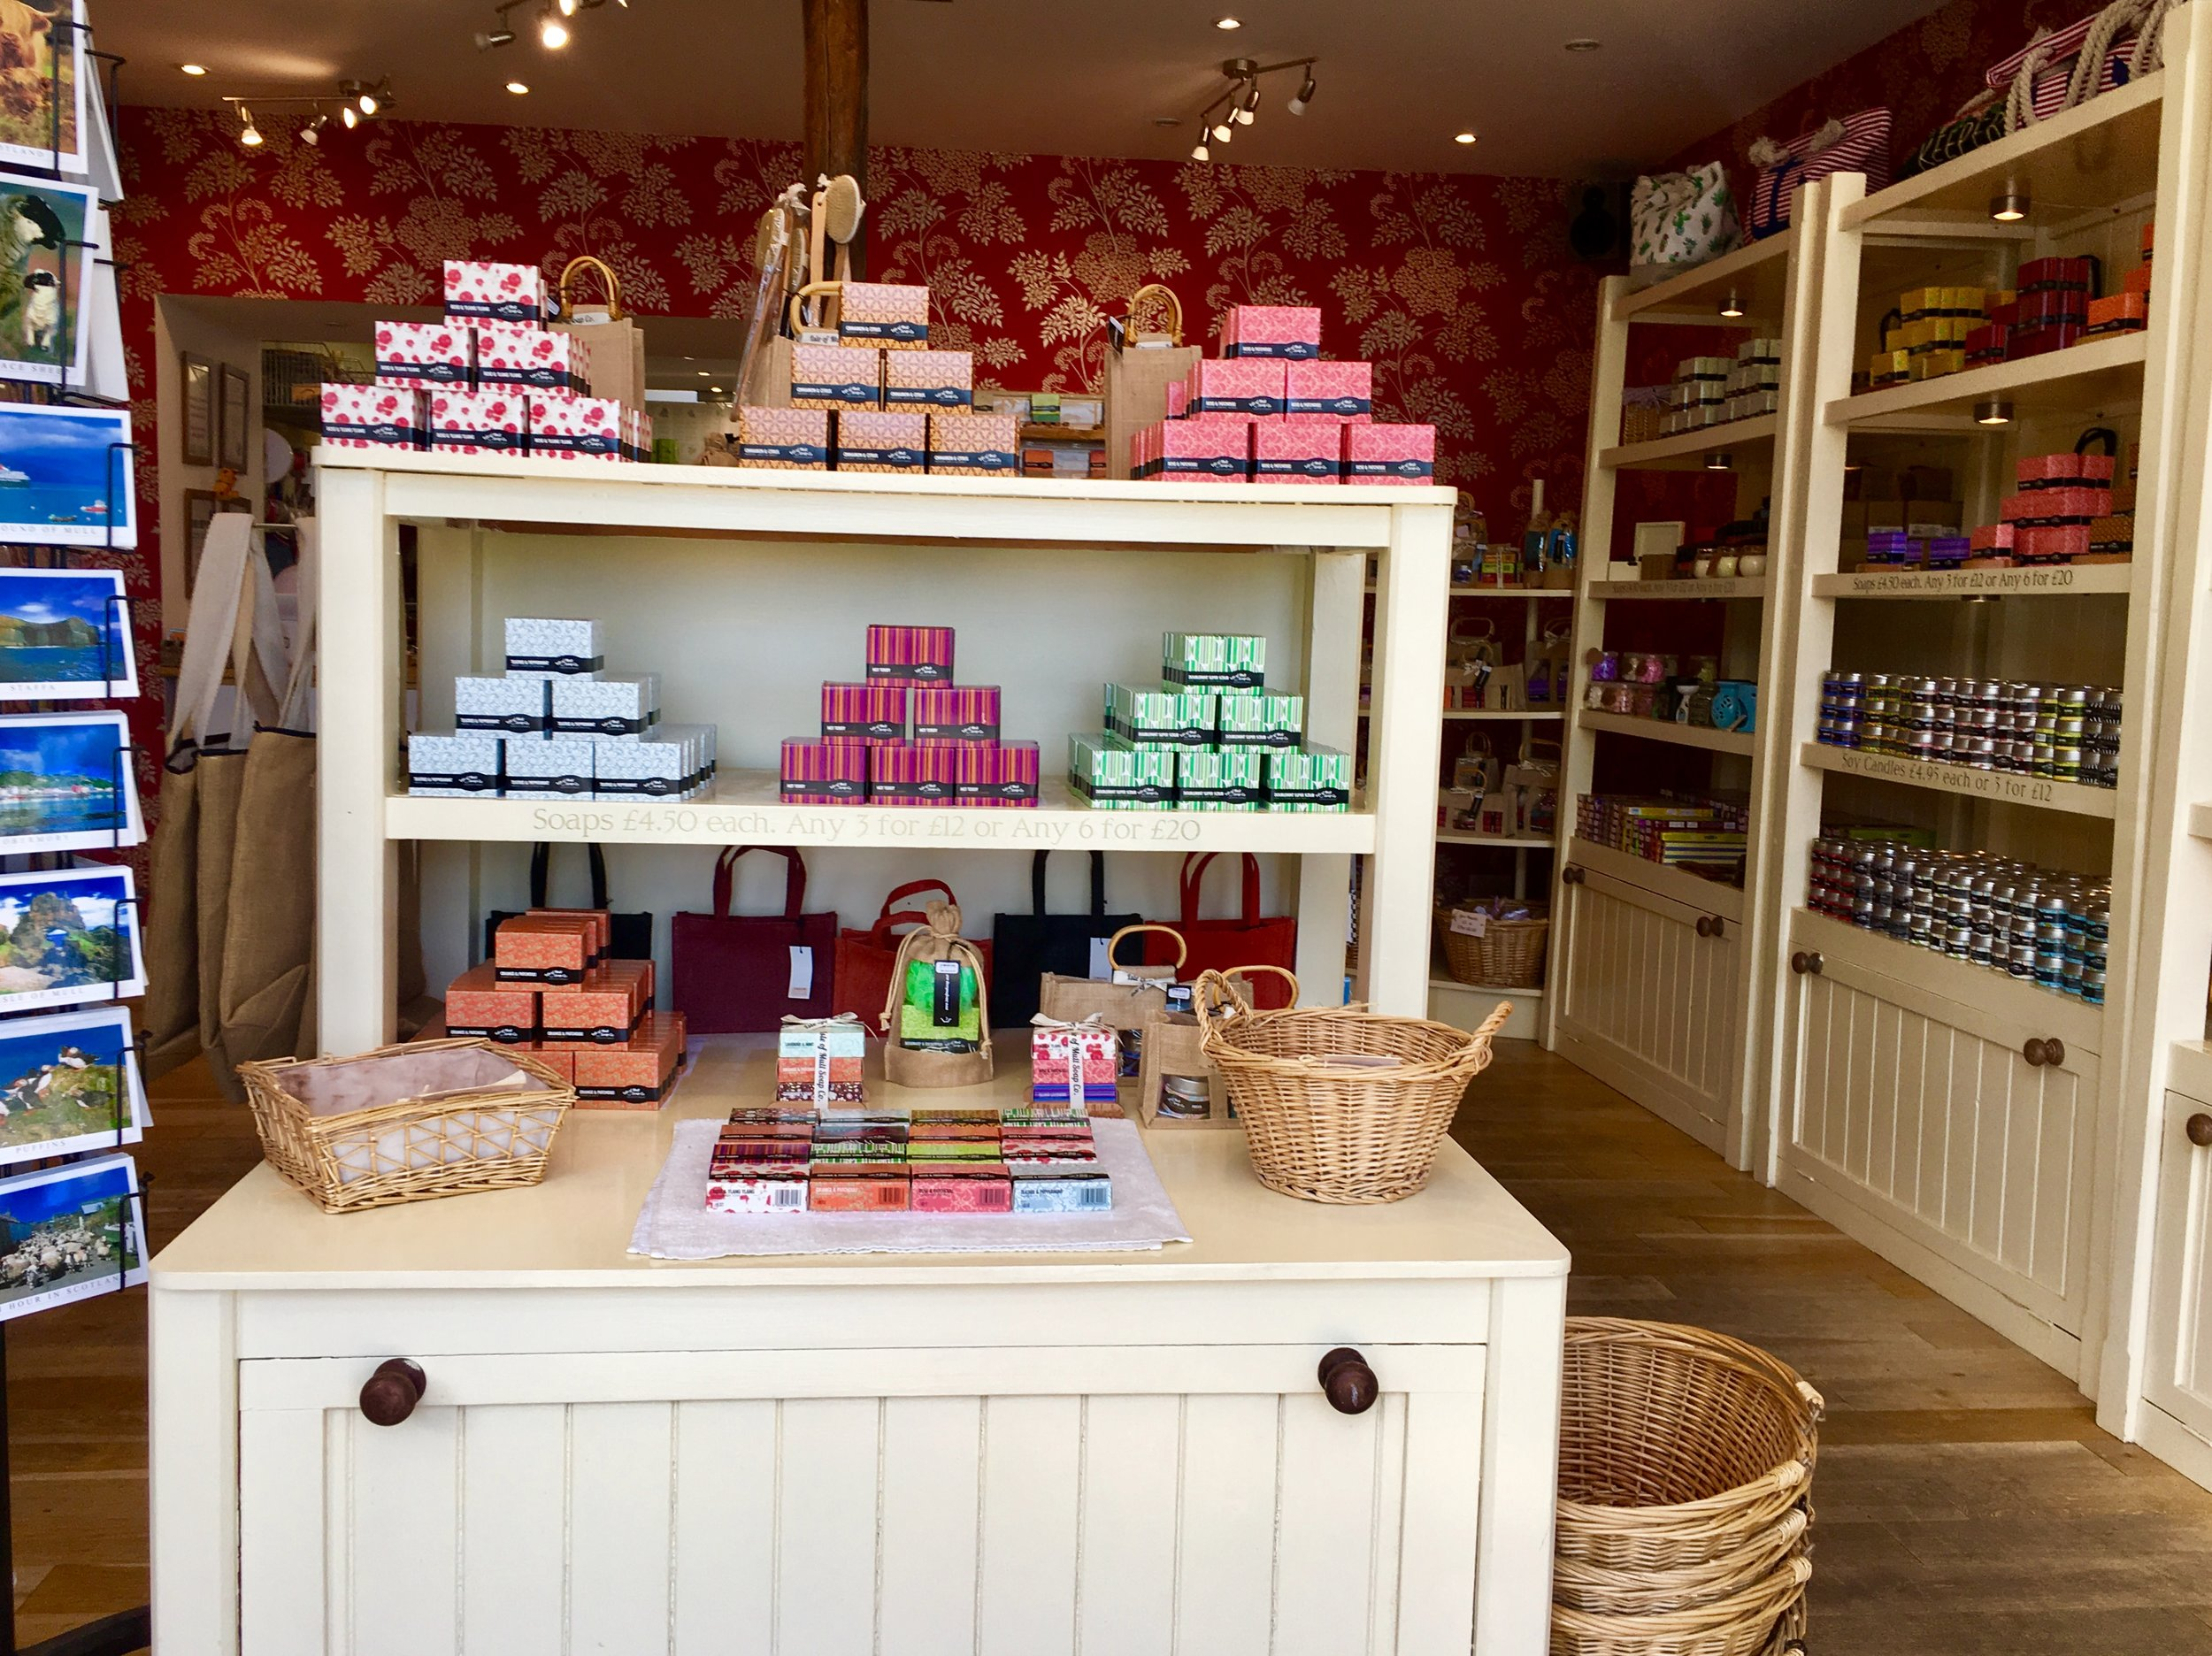 Isle of Mull Soap Co. has a large selection of soap and bath products.